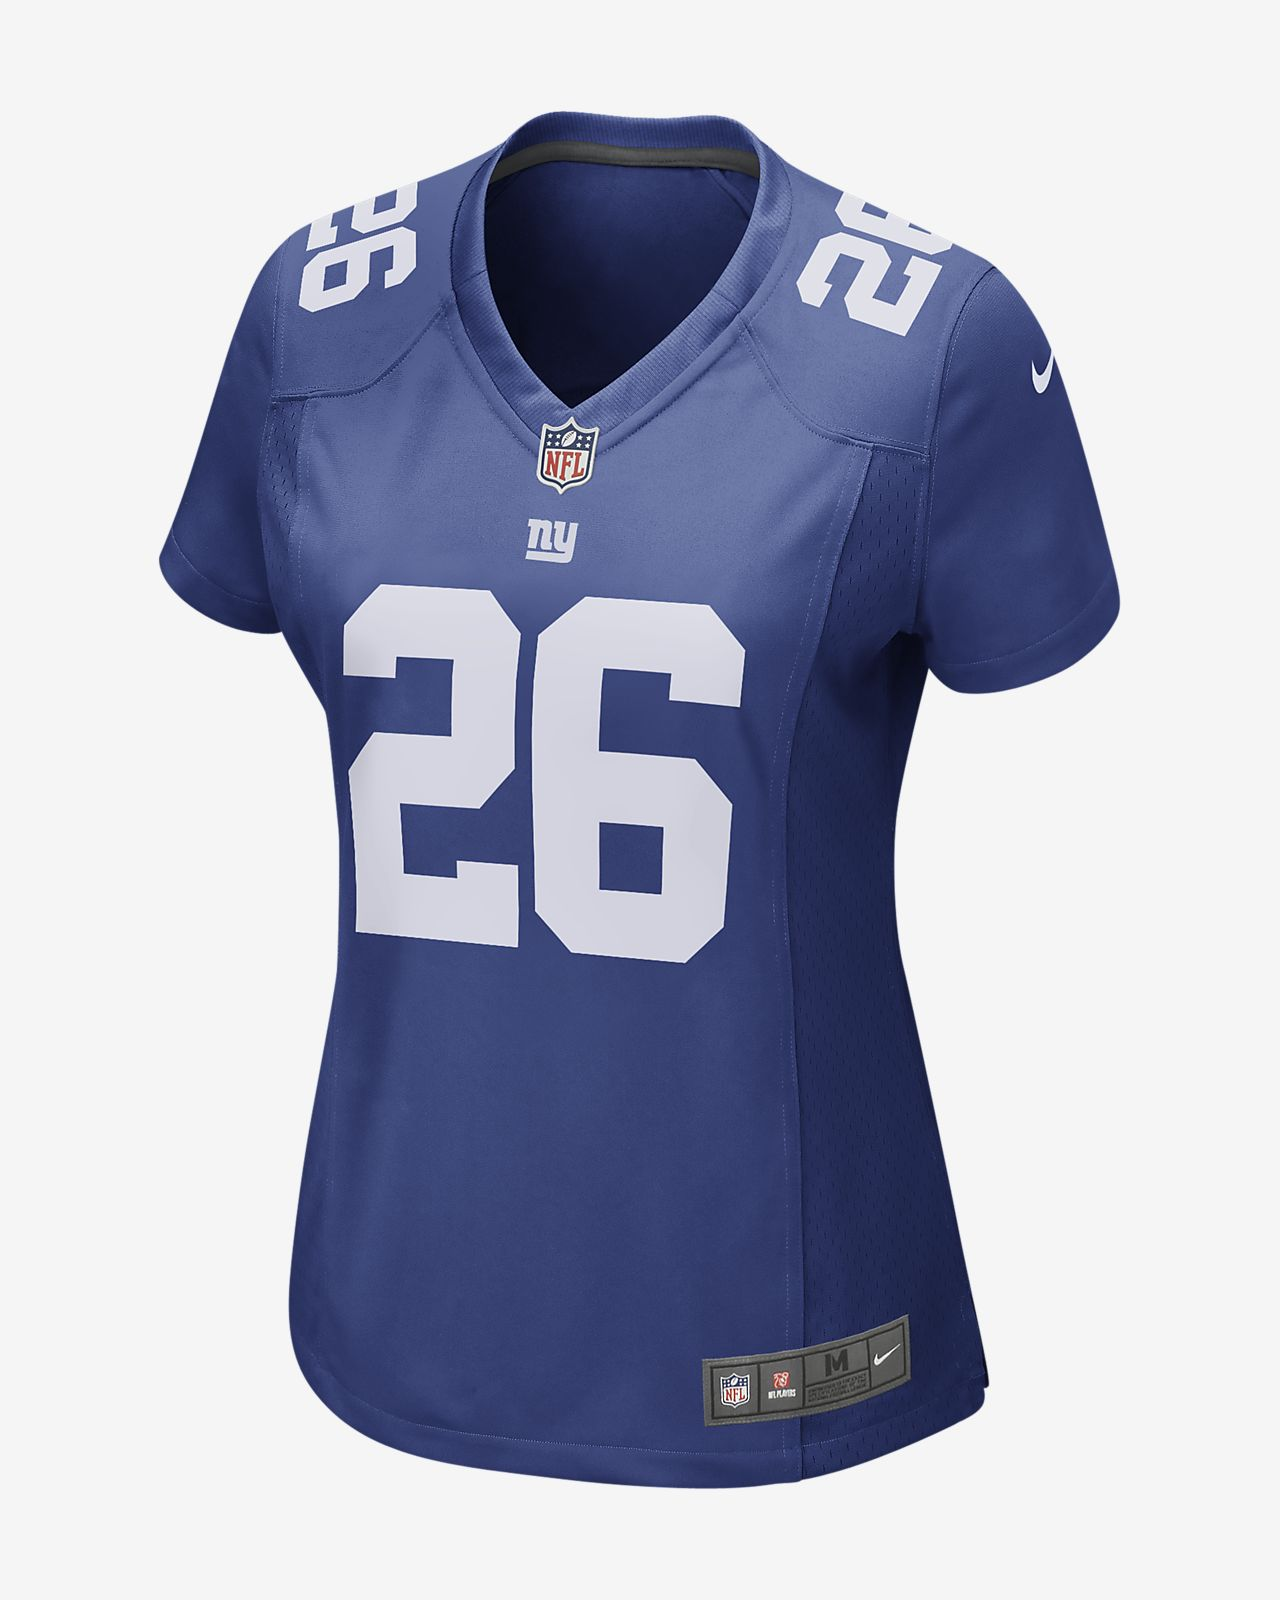 NFL New York Giants Game (Saquon Barkley) Women s Football Jersey ... 5c3c0d84f9